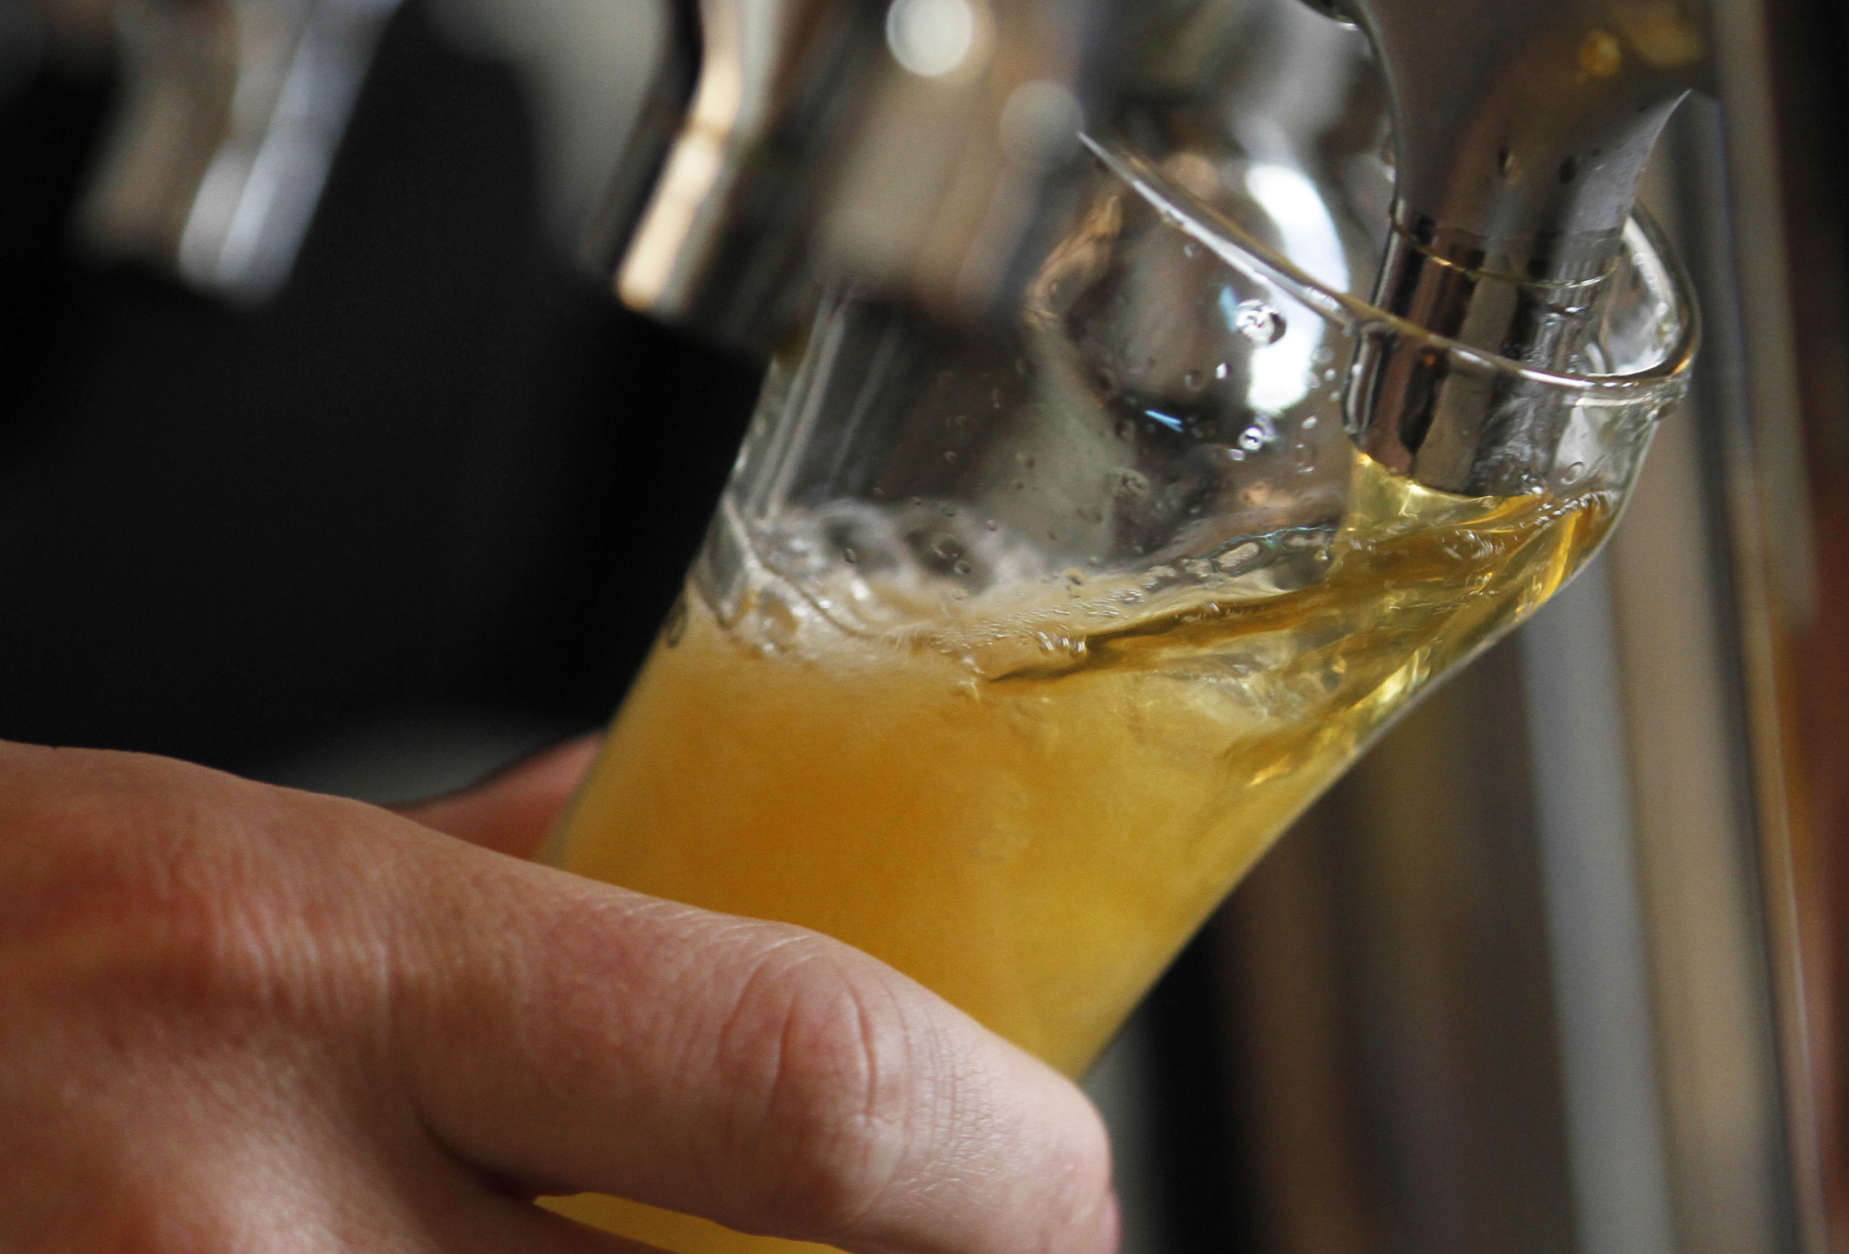 Famed California craft brewing company, The Bruery, is opening its first brick-and-mortar store east of the Mississippi this fall in D.C.'s Union Market district. (AP Photo)